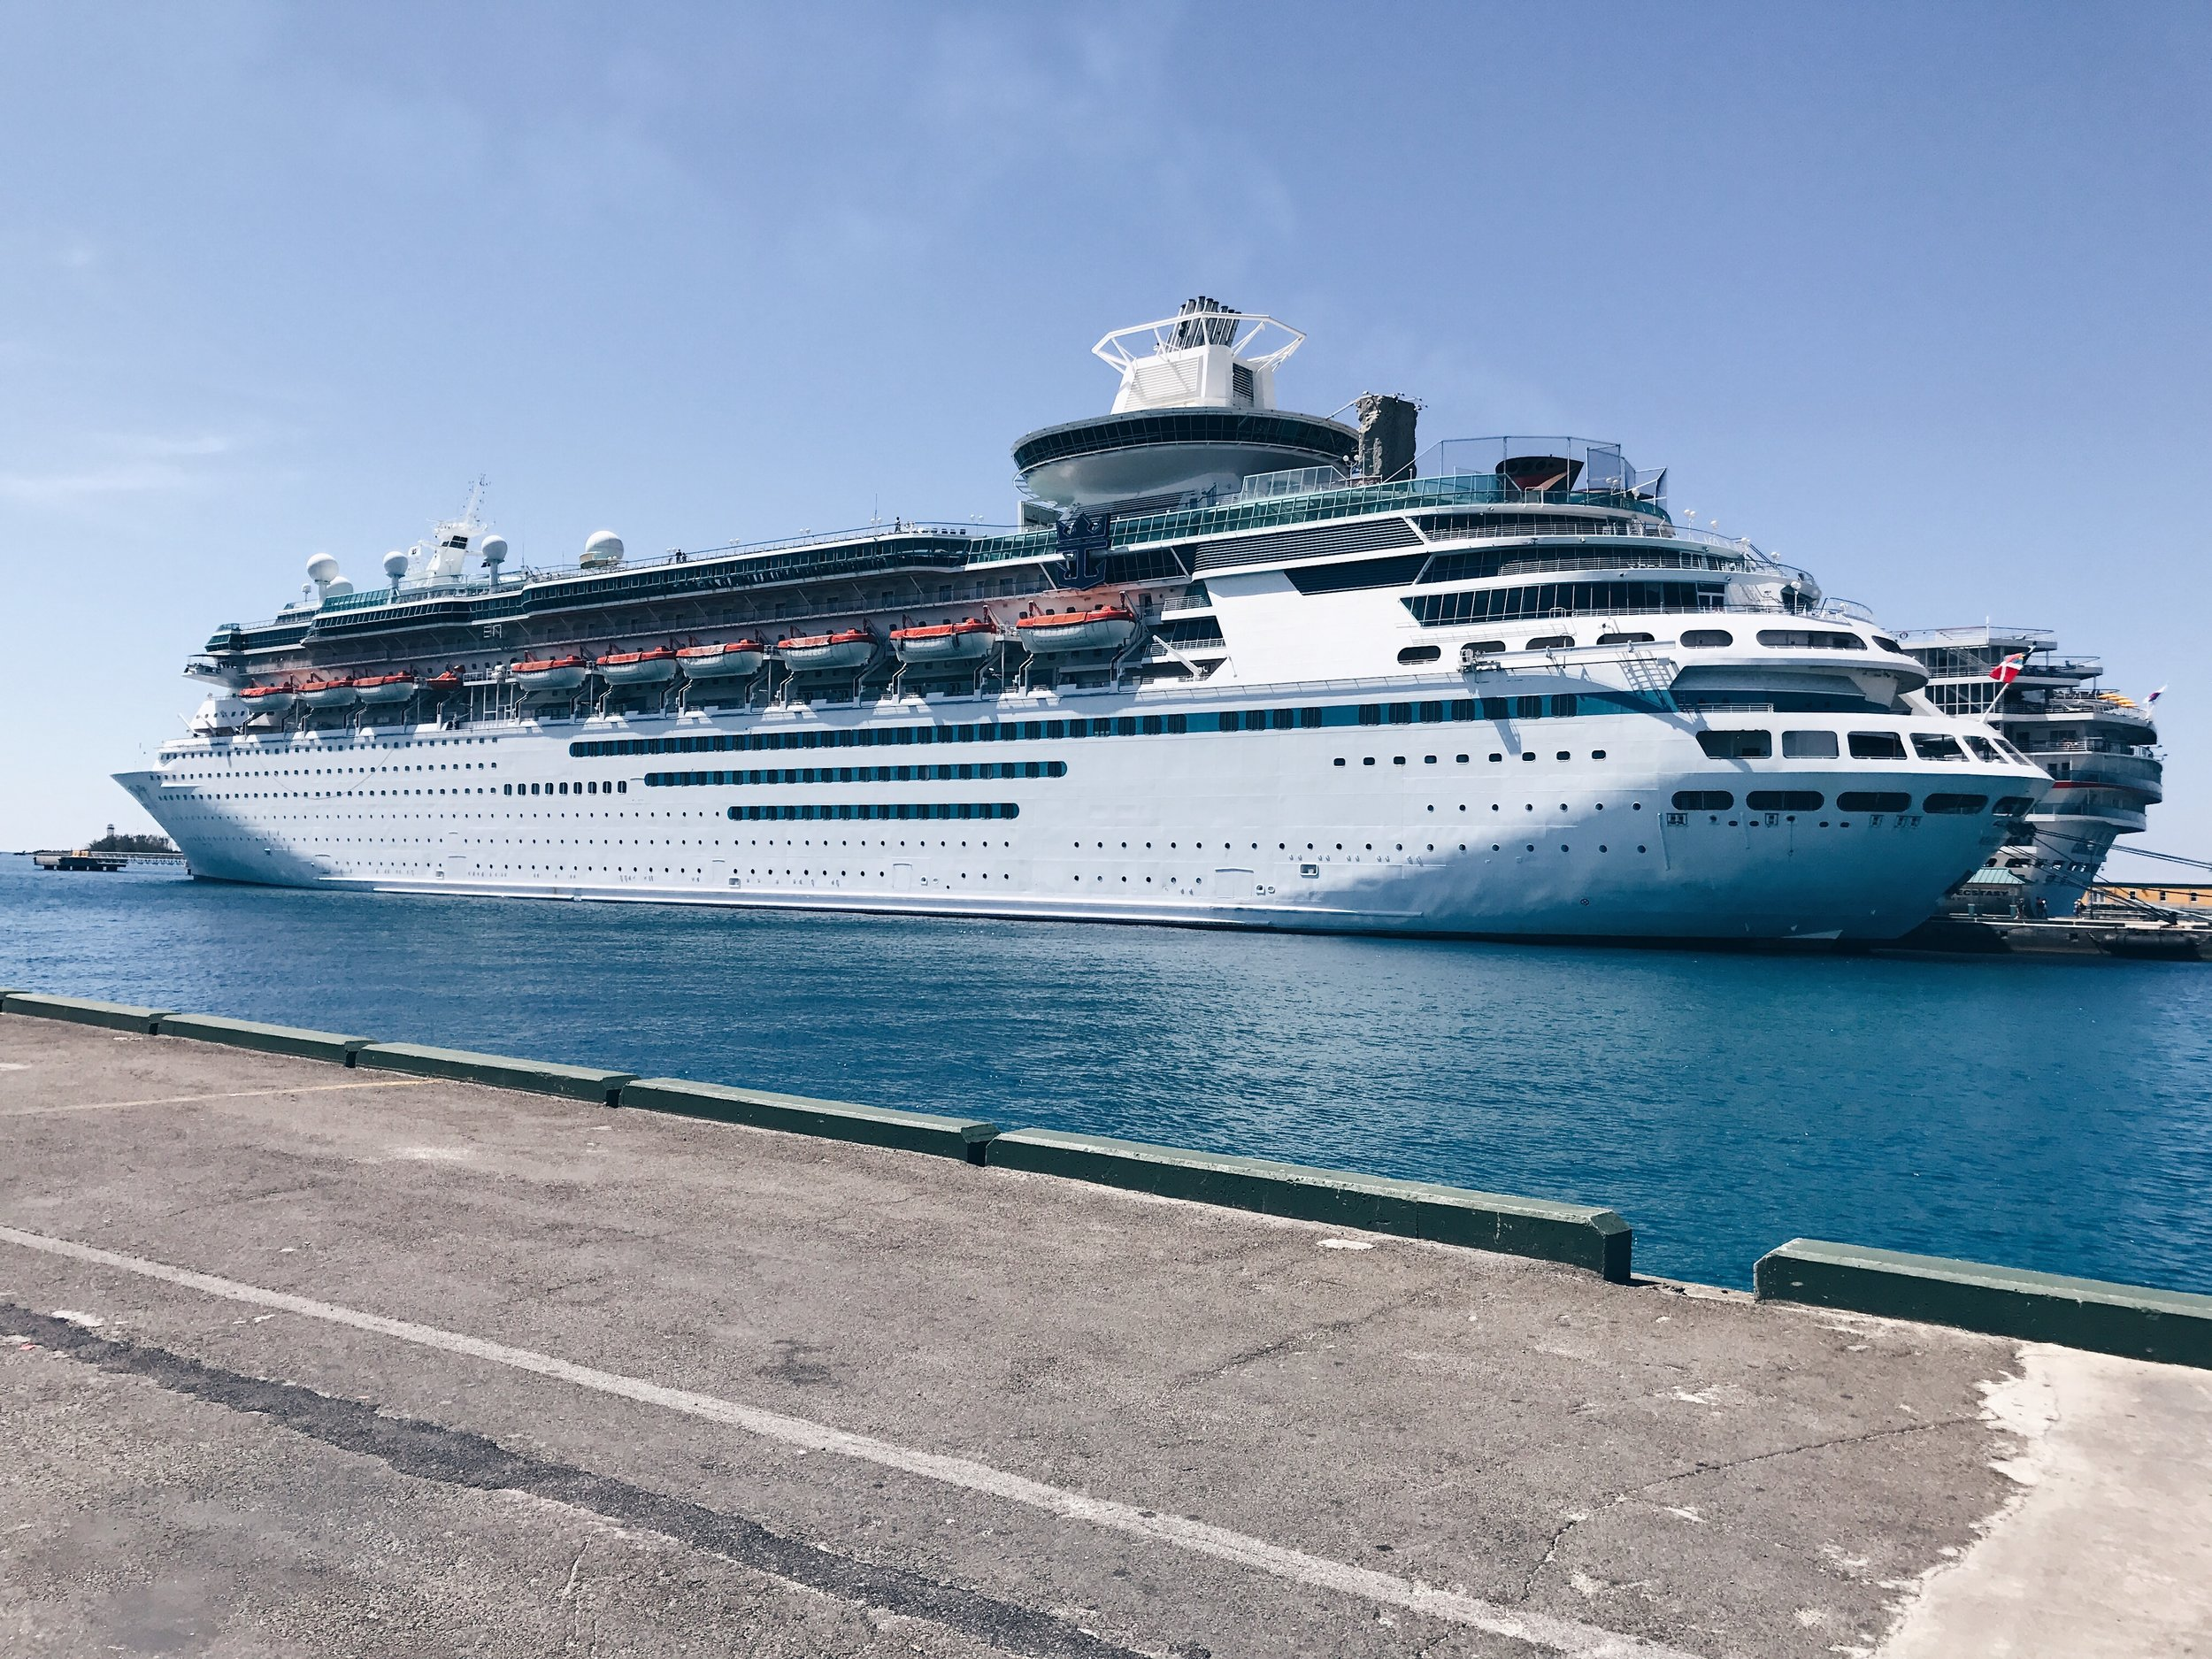 5 Cruising TIps by Indianapolis blogger Trendy in Indy